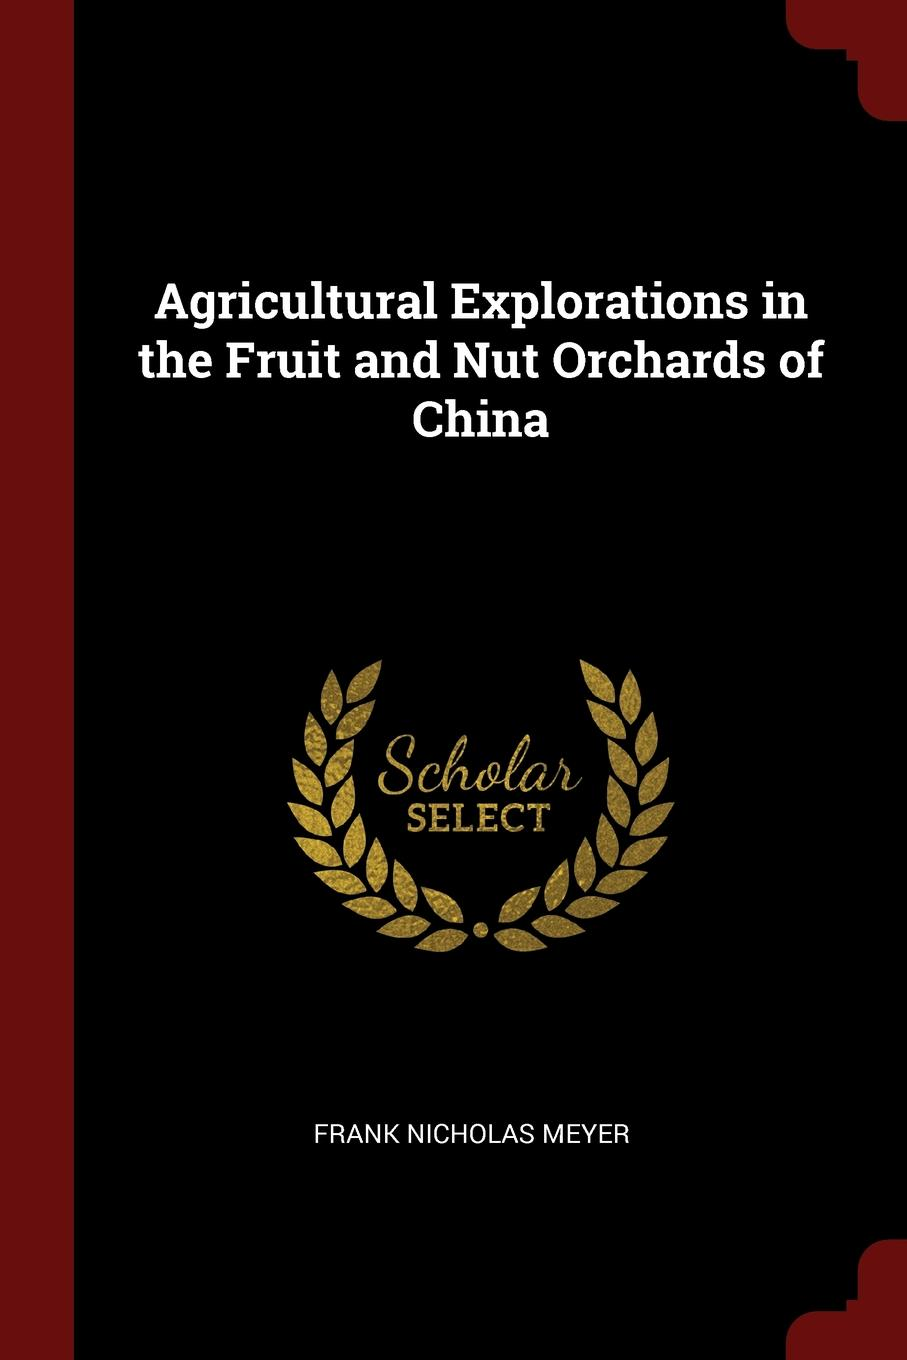 Frank Nicholas Meyer Agricultural Explorations in the Fruit and Nut Orchards of China